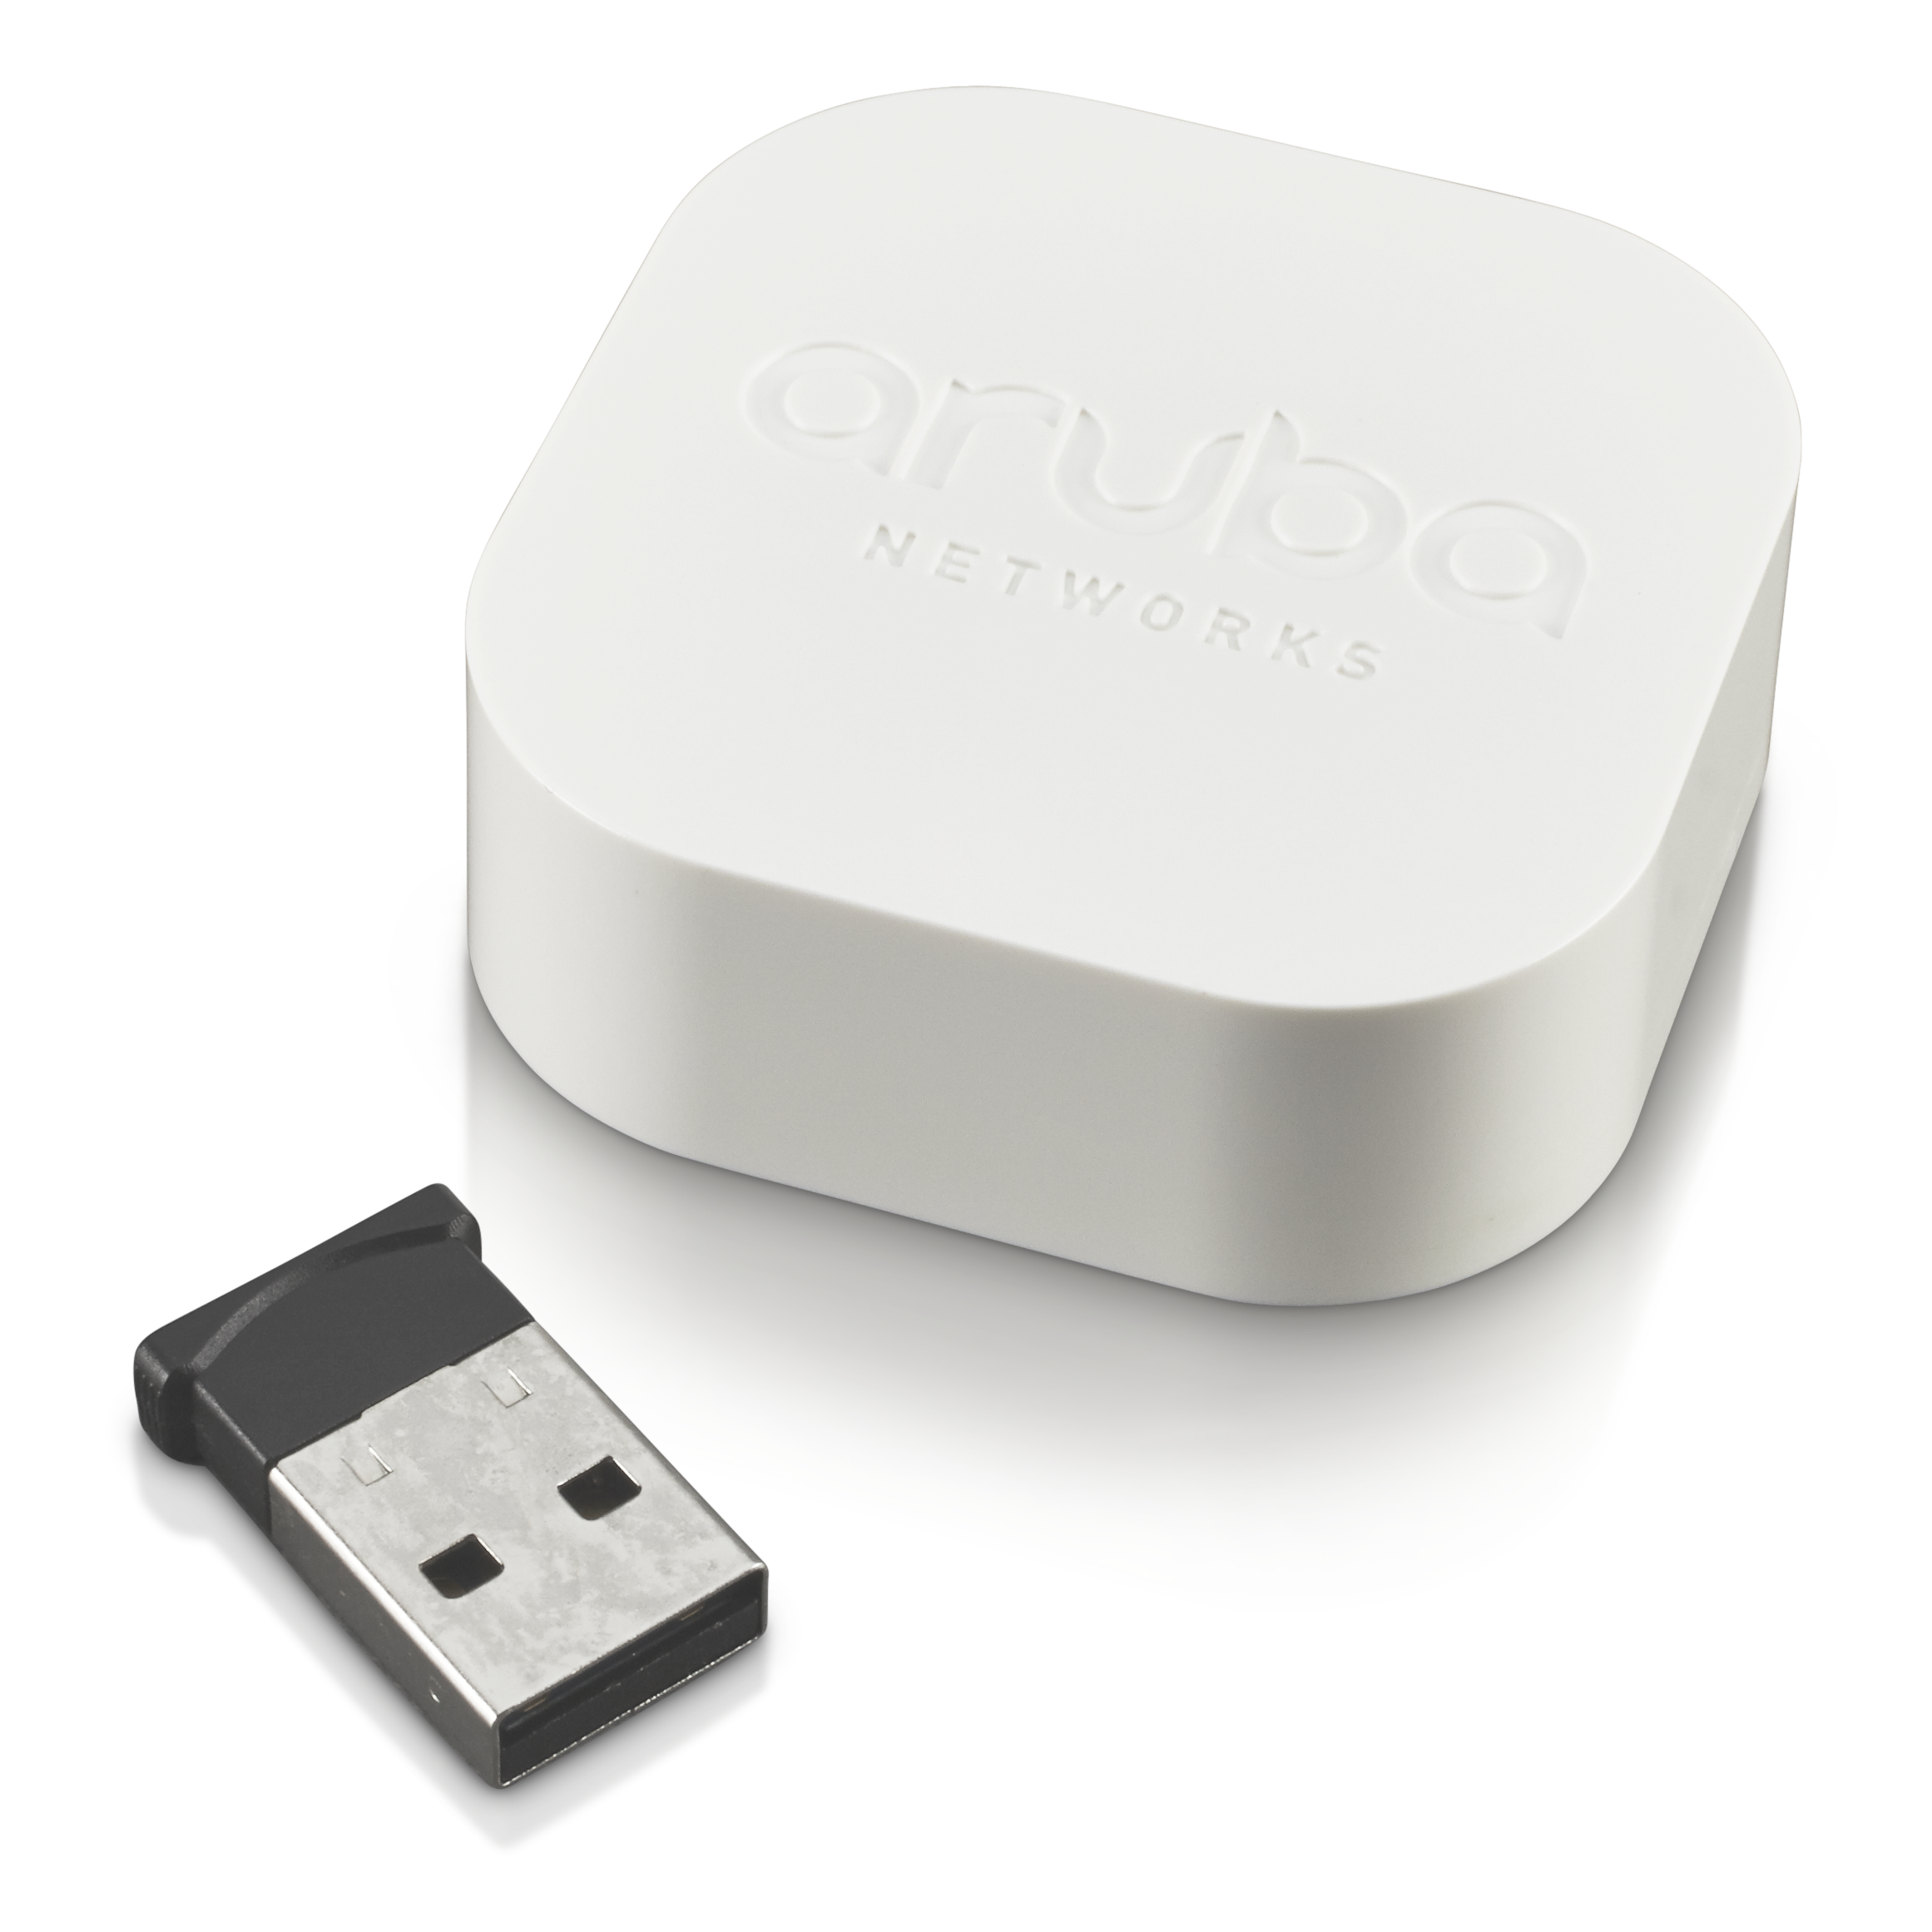 USB Beacon (Image courtesy of Aruba Networks, a Hewlett Packard Enterprise company)